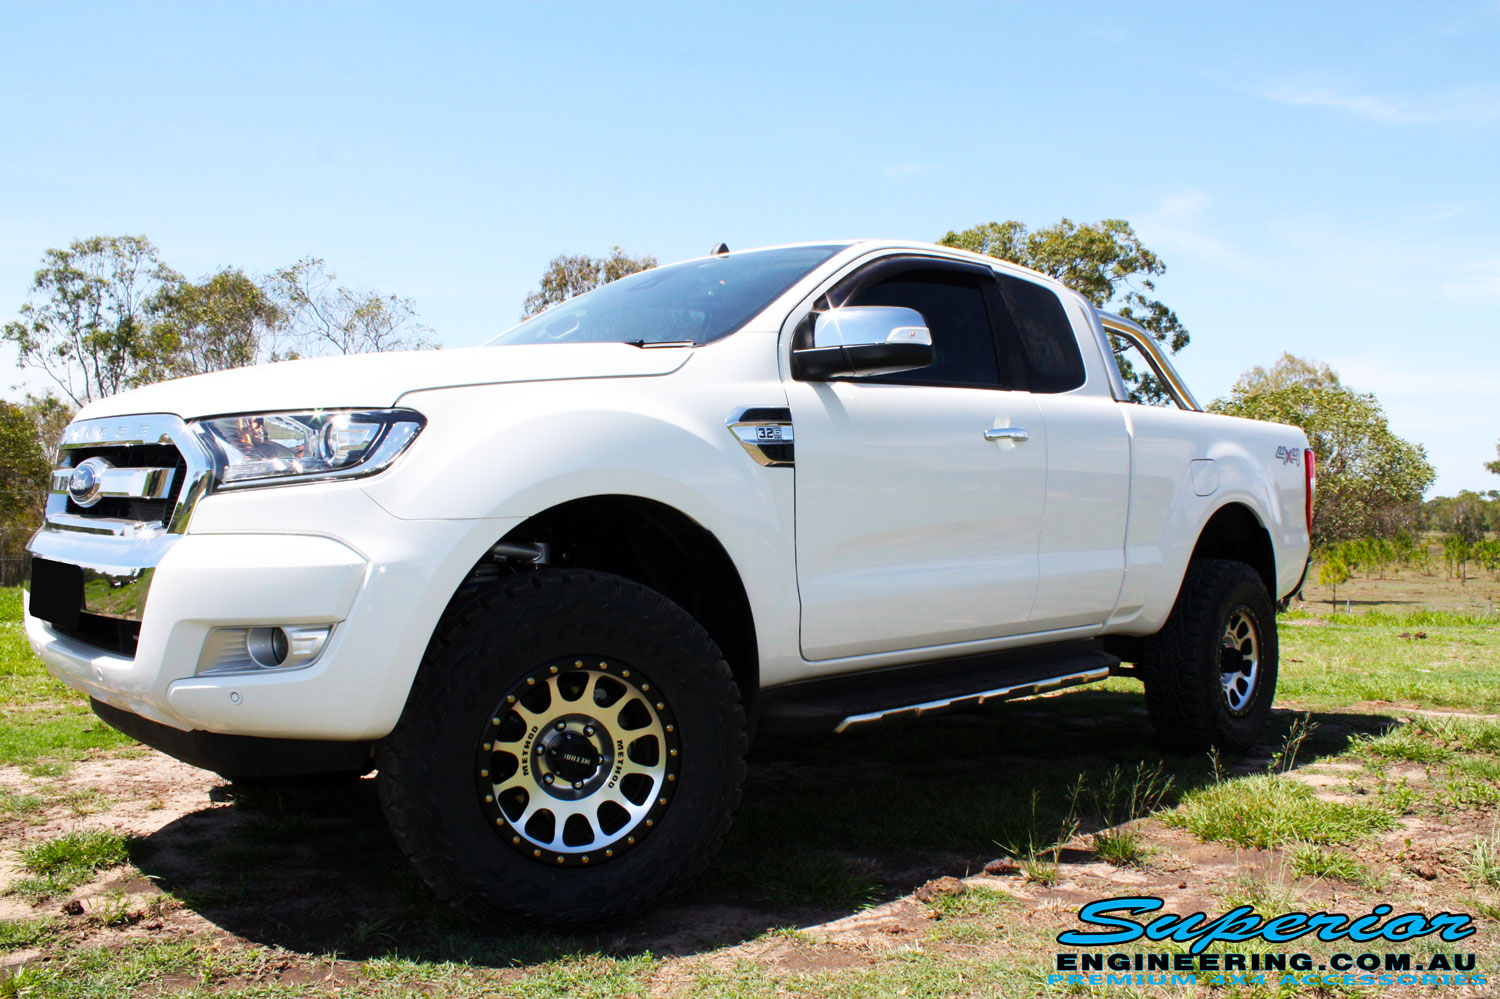 """Front left side view of a White Ford PXII Ranger Dual Cab after fitment of a Superior 2"""" Inch Rear PXII Ranger Coil Conversion Kit with Redarc Dual Battery Setup"""